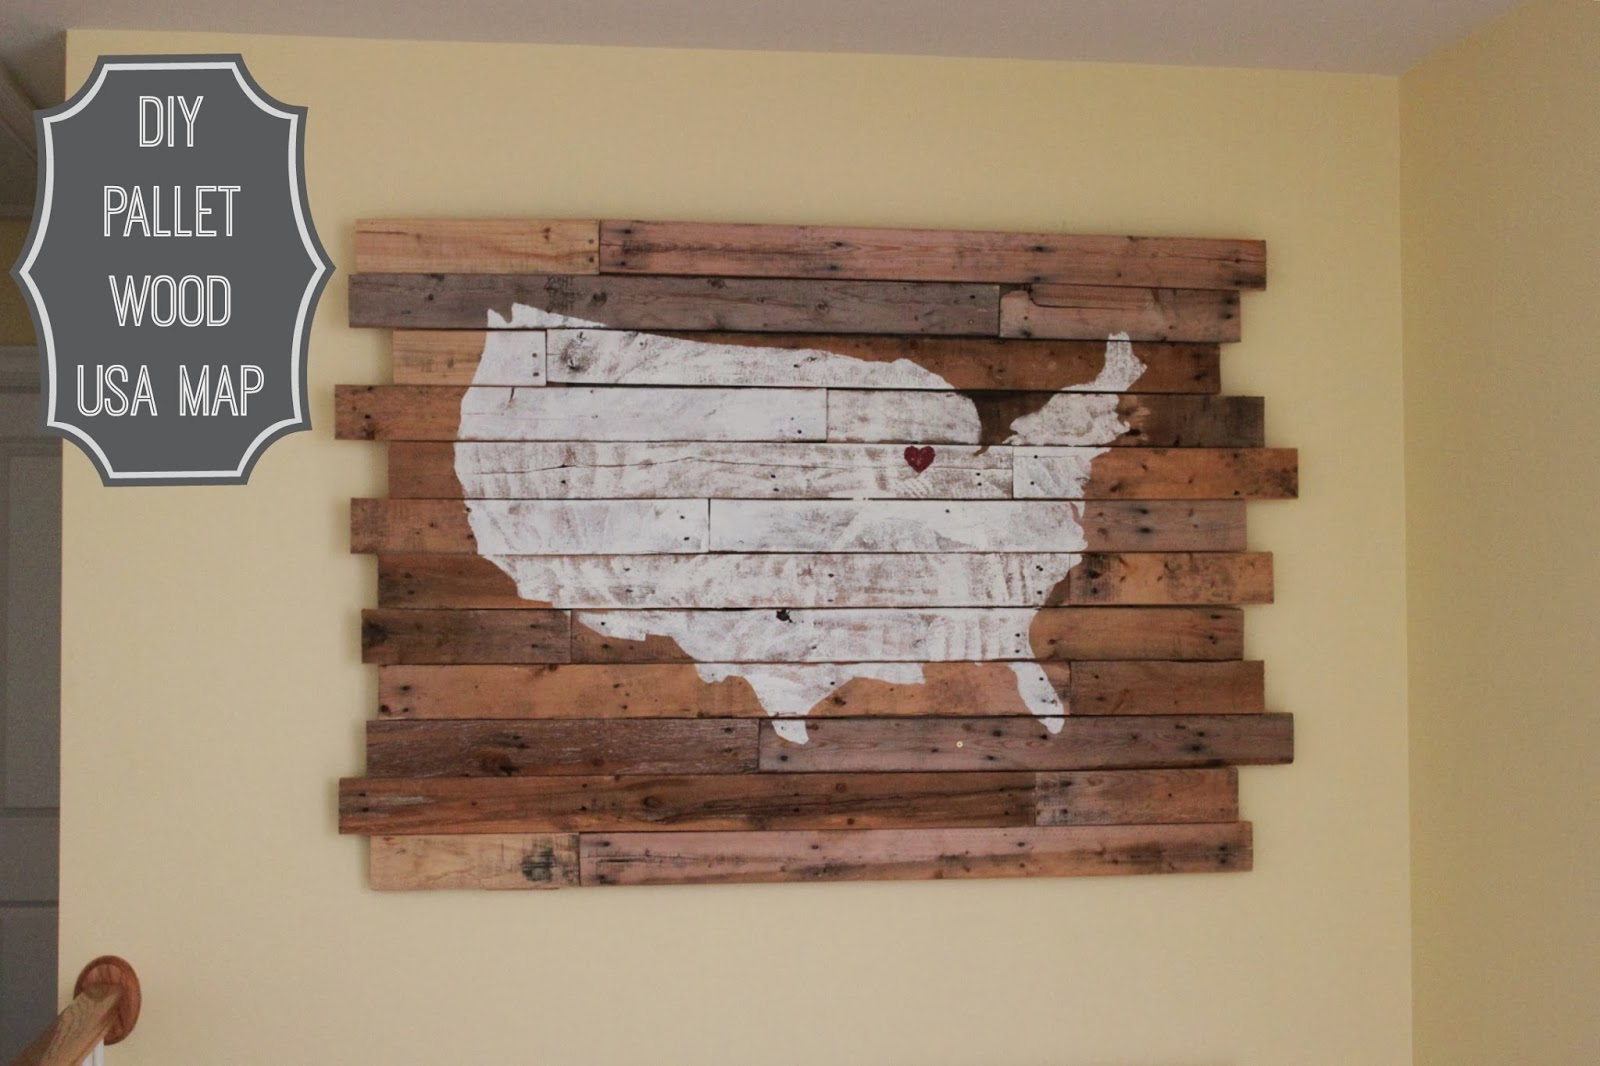 All Things Diy Pallet Wood Usa Map